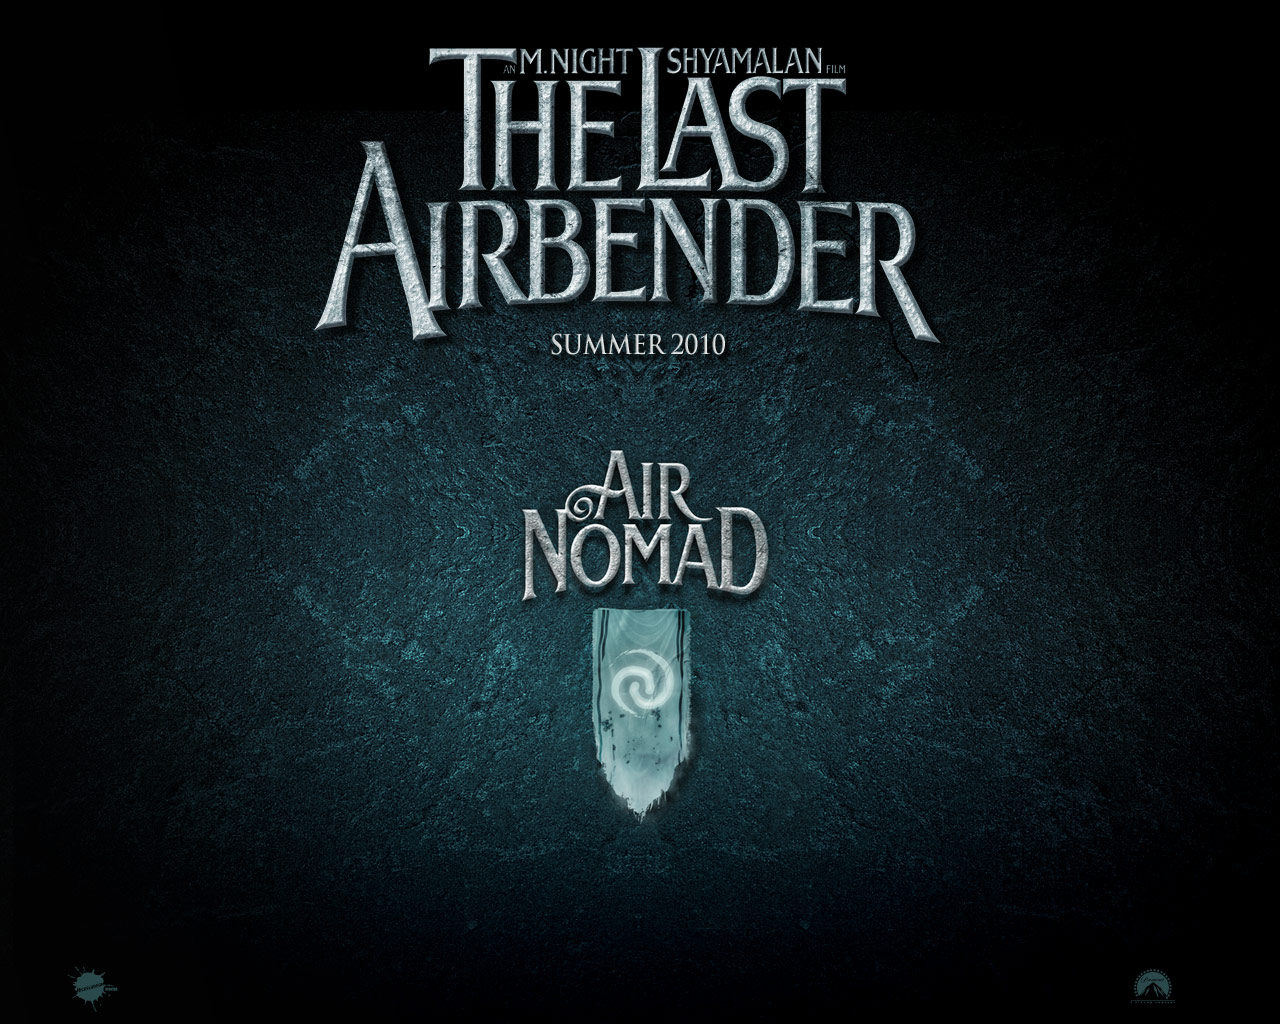 Download The Last Airbender Movie